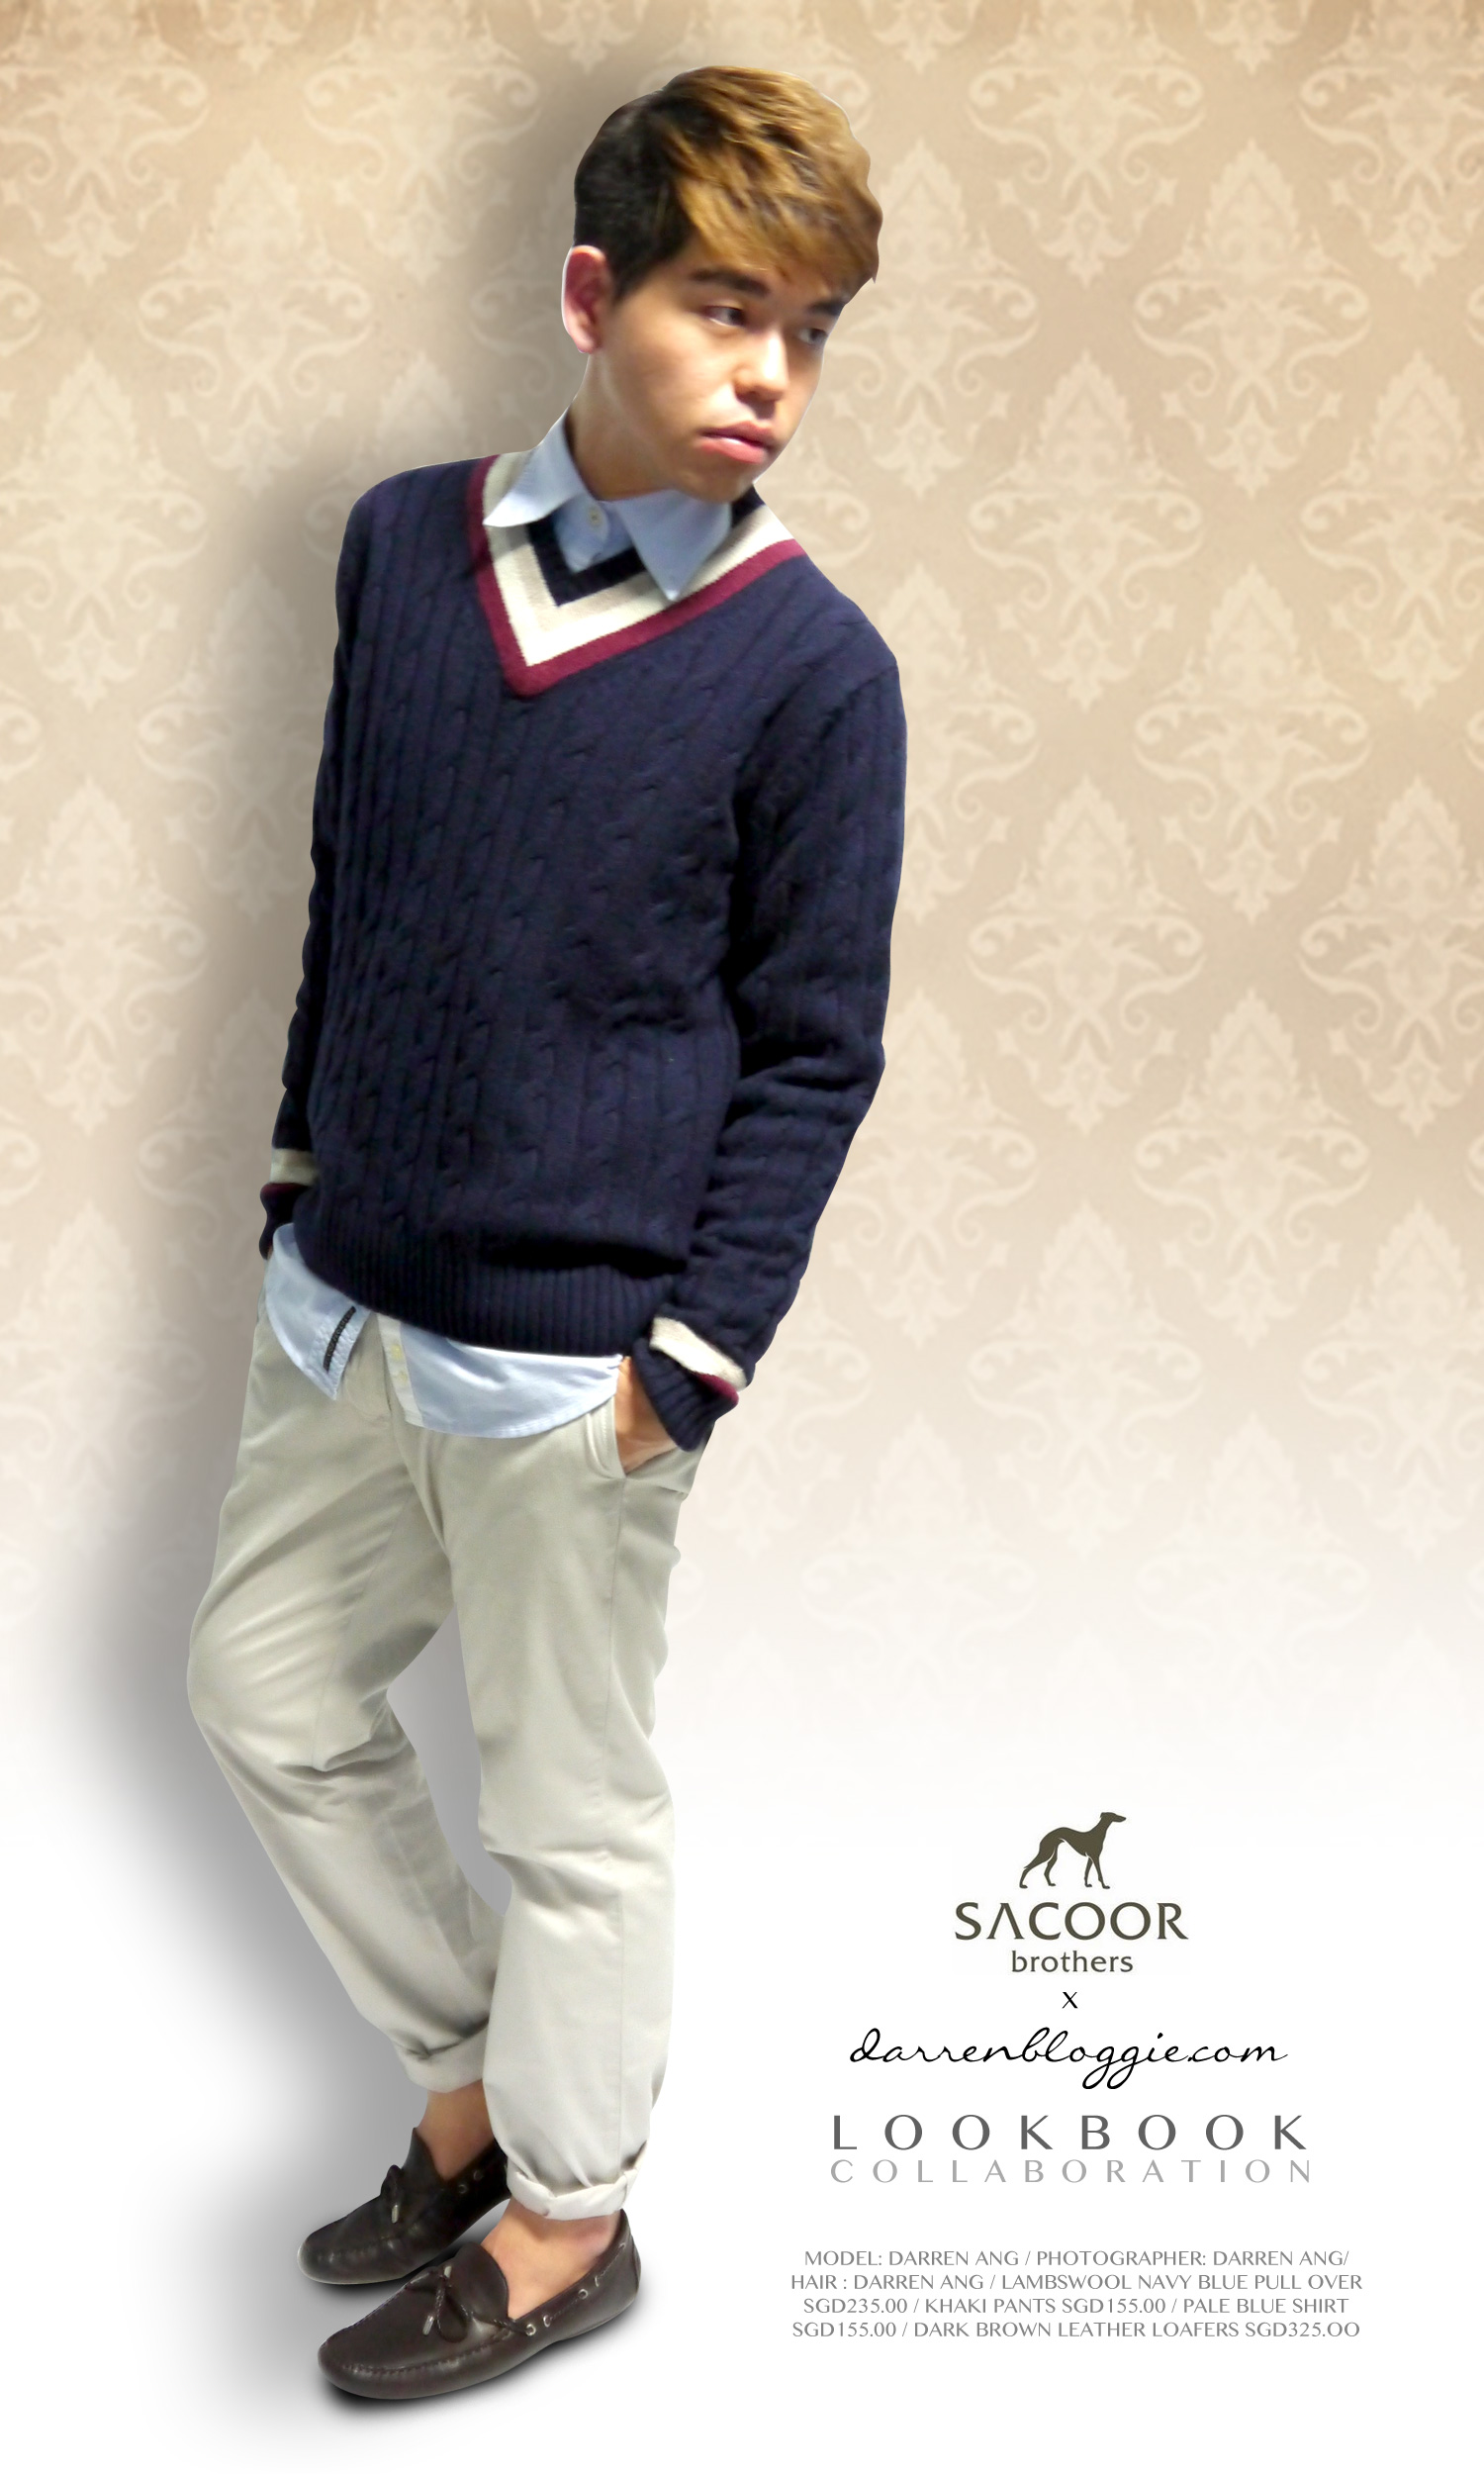 Sacoor Brothers x DarrenBloggie Lookbook Collaboration